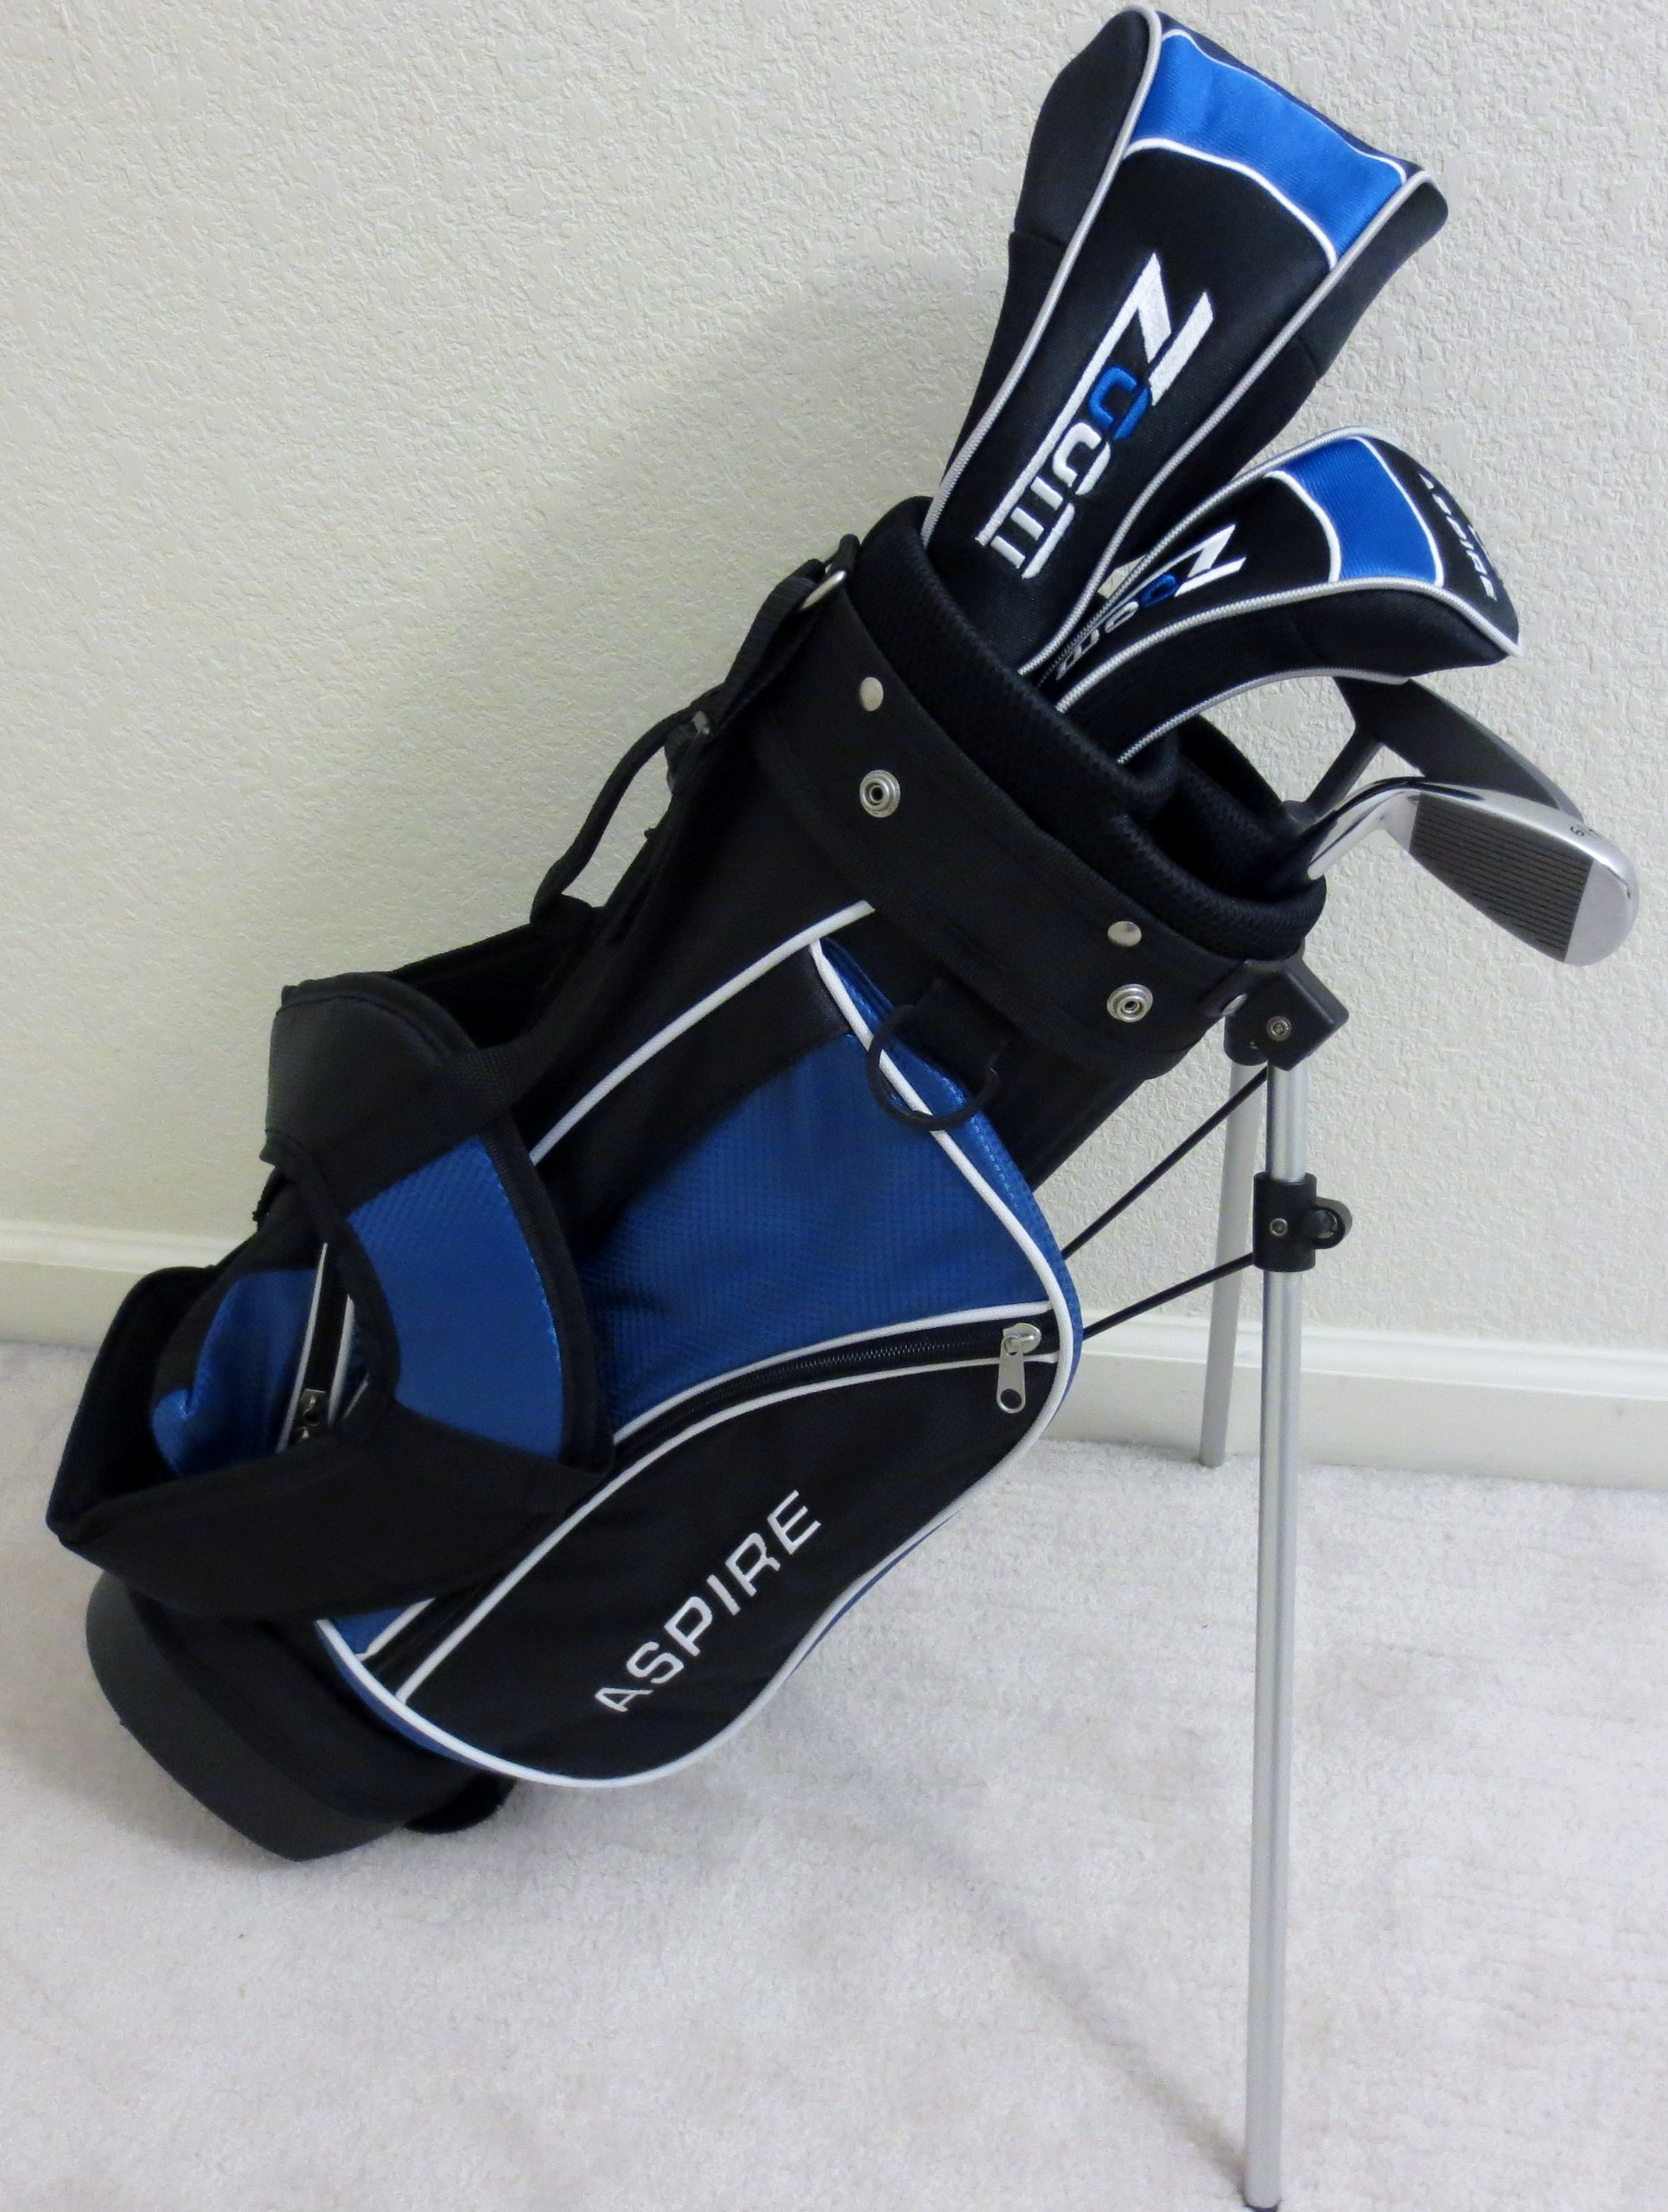 Boys Right Handed Junior Golf Club Set with Stand Bag for Kids Ages 3-6 Jr. Professional Quality